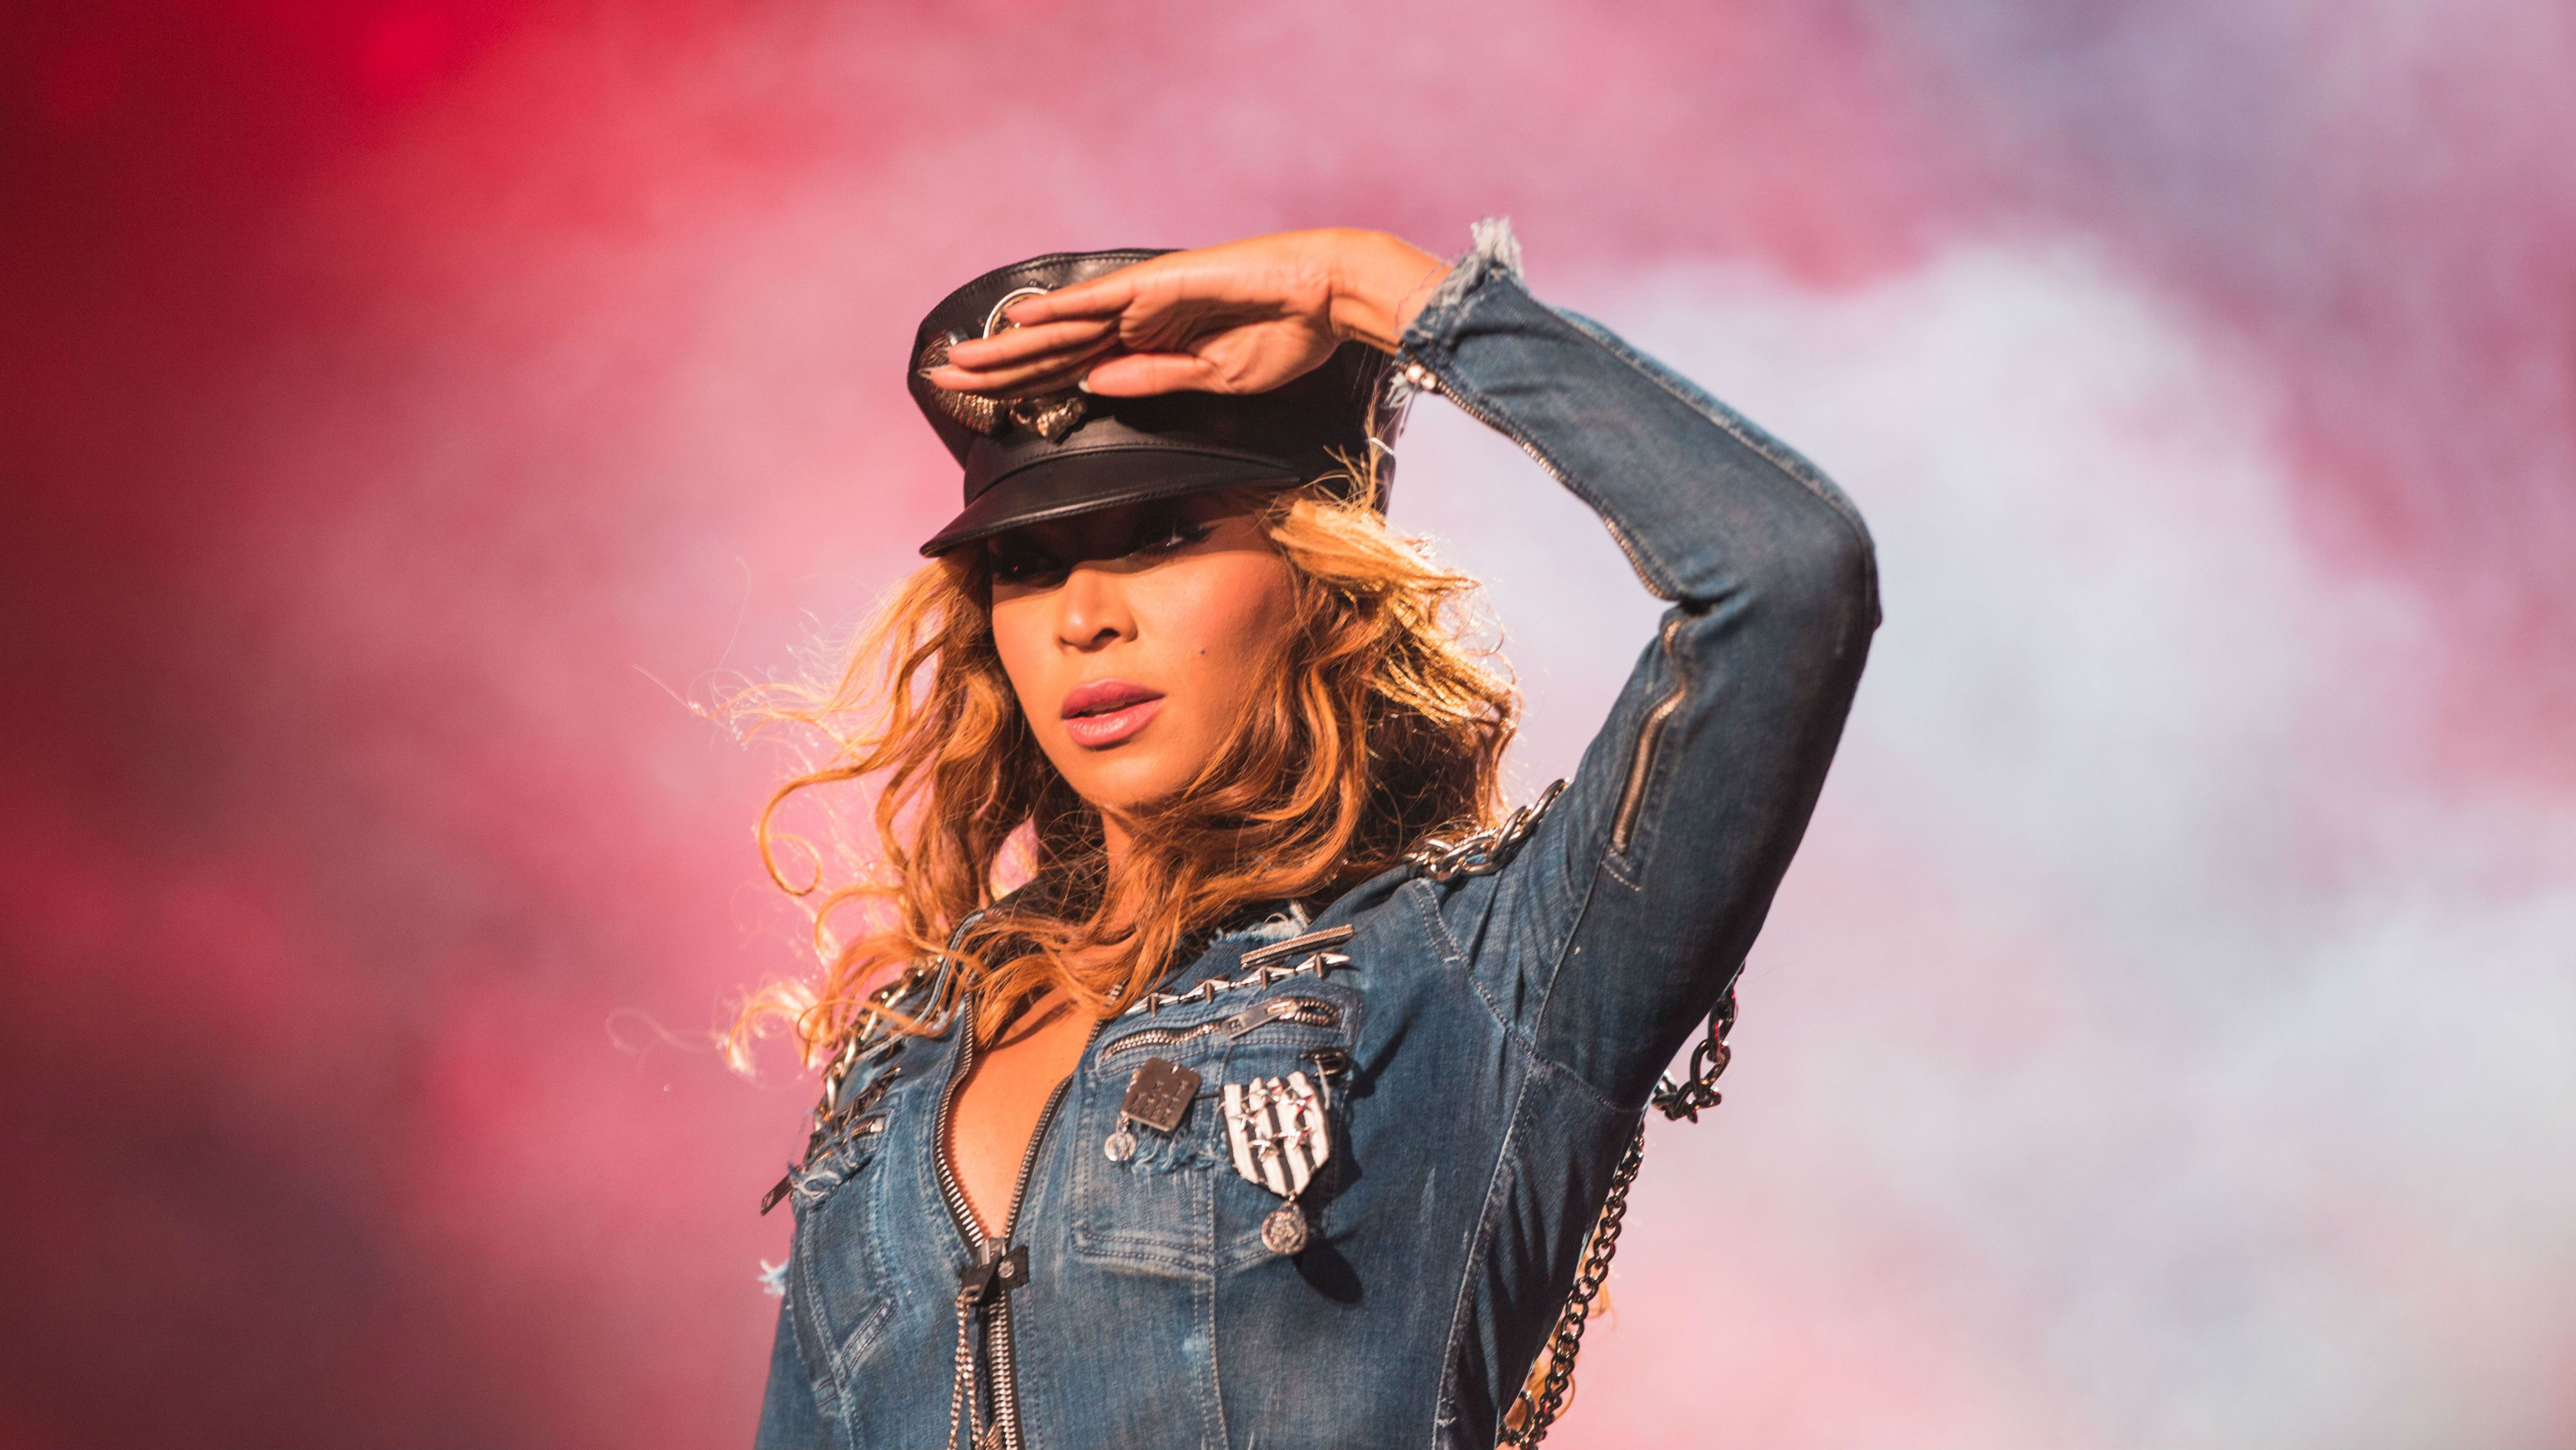 IMAGE DISTRIBUTED FOR PARKWOOD ENTERTAINMENT - Beyonce performs during the On The Run tour at Investors Group Field on Sunday, July 27, 2014 in Winnipeg, Manitoba, Canada . (Photo by Robin Harper/Invision for Parkwood Entertainment/AP Images)